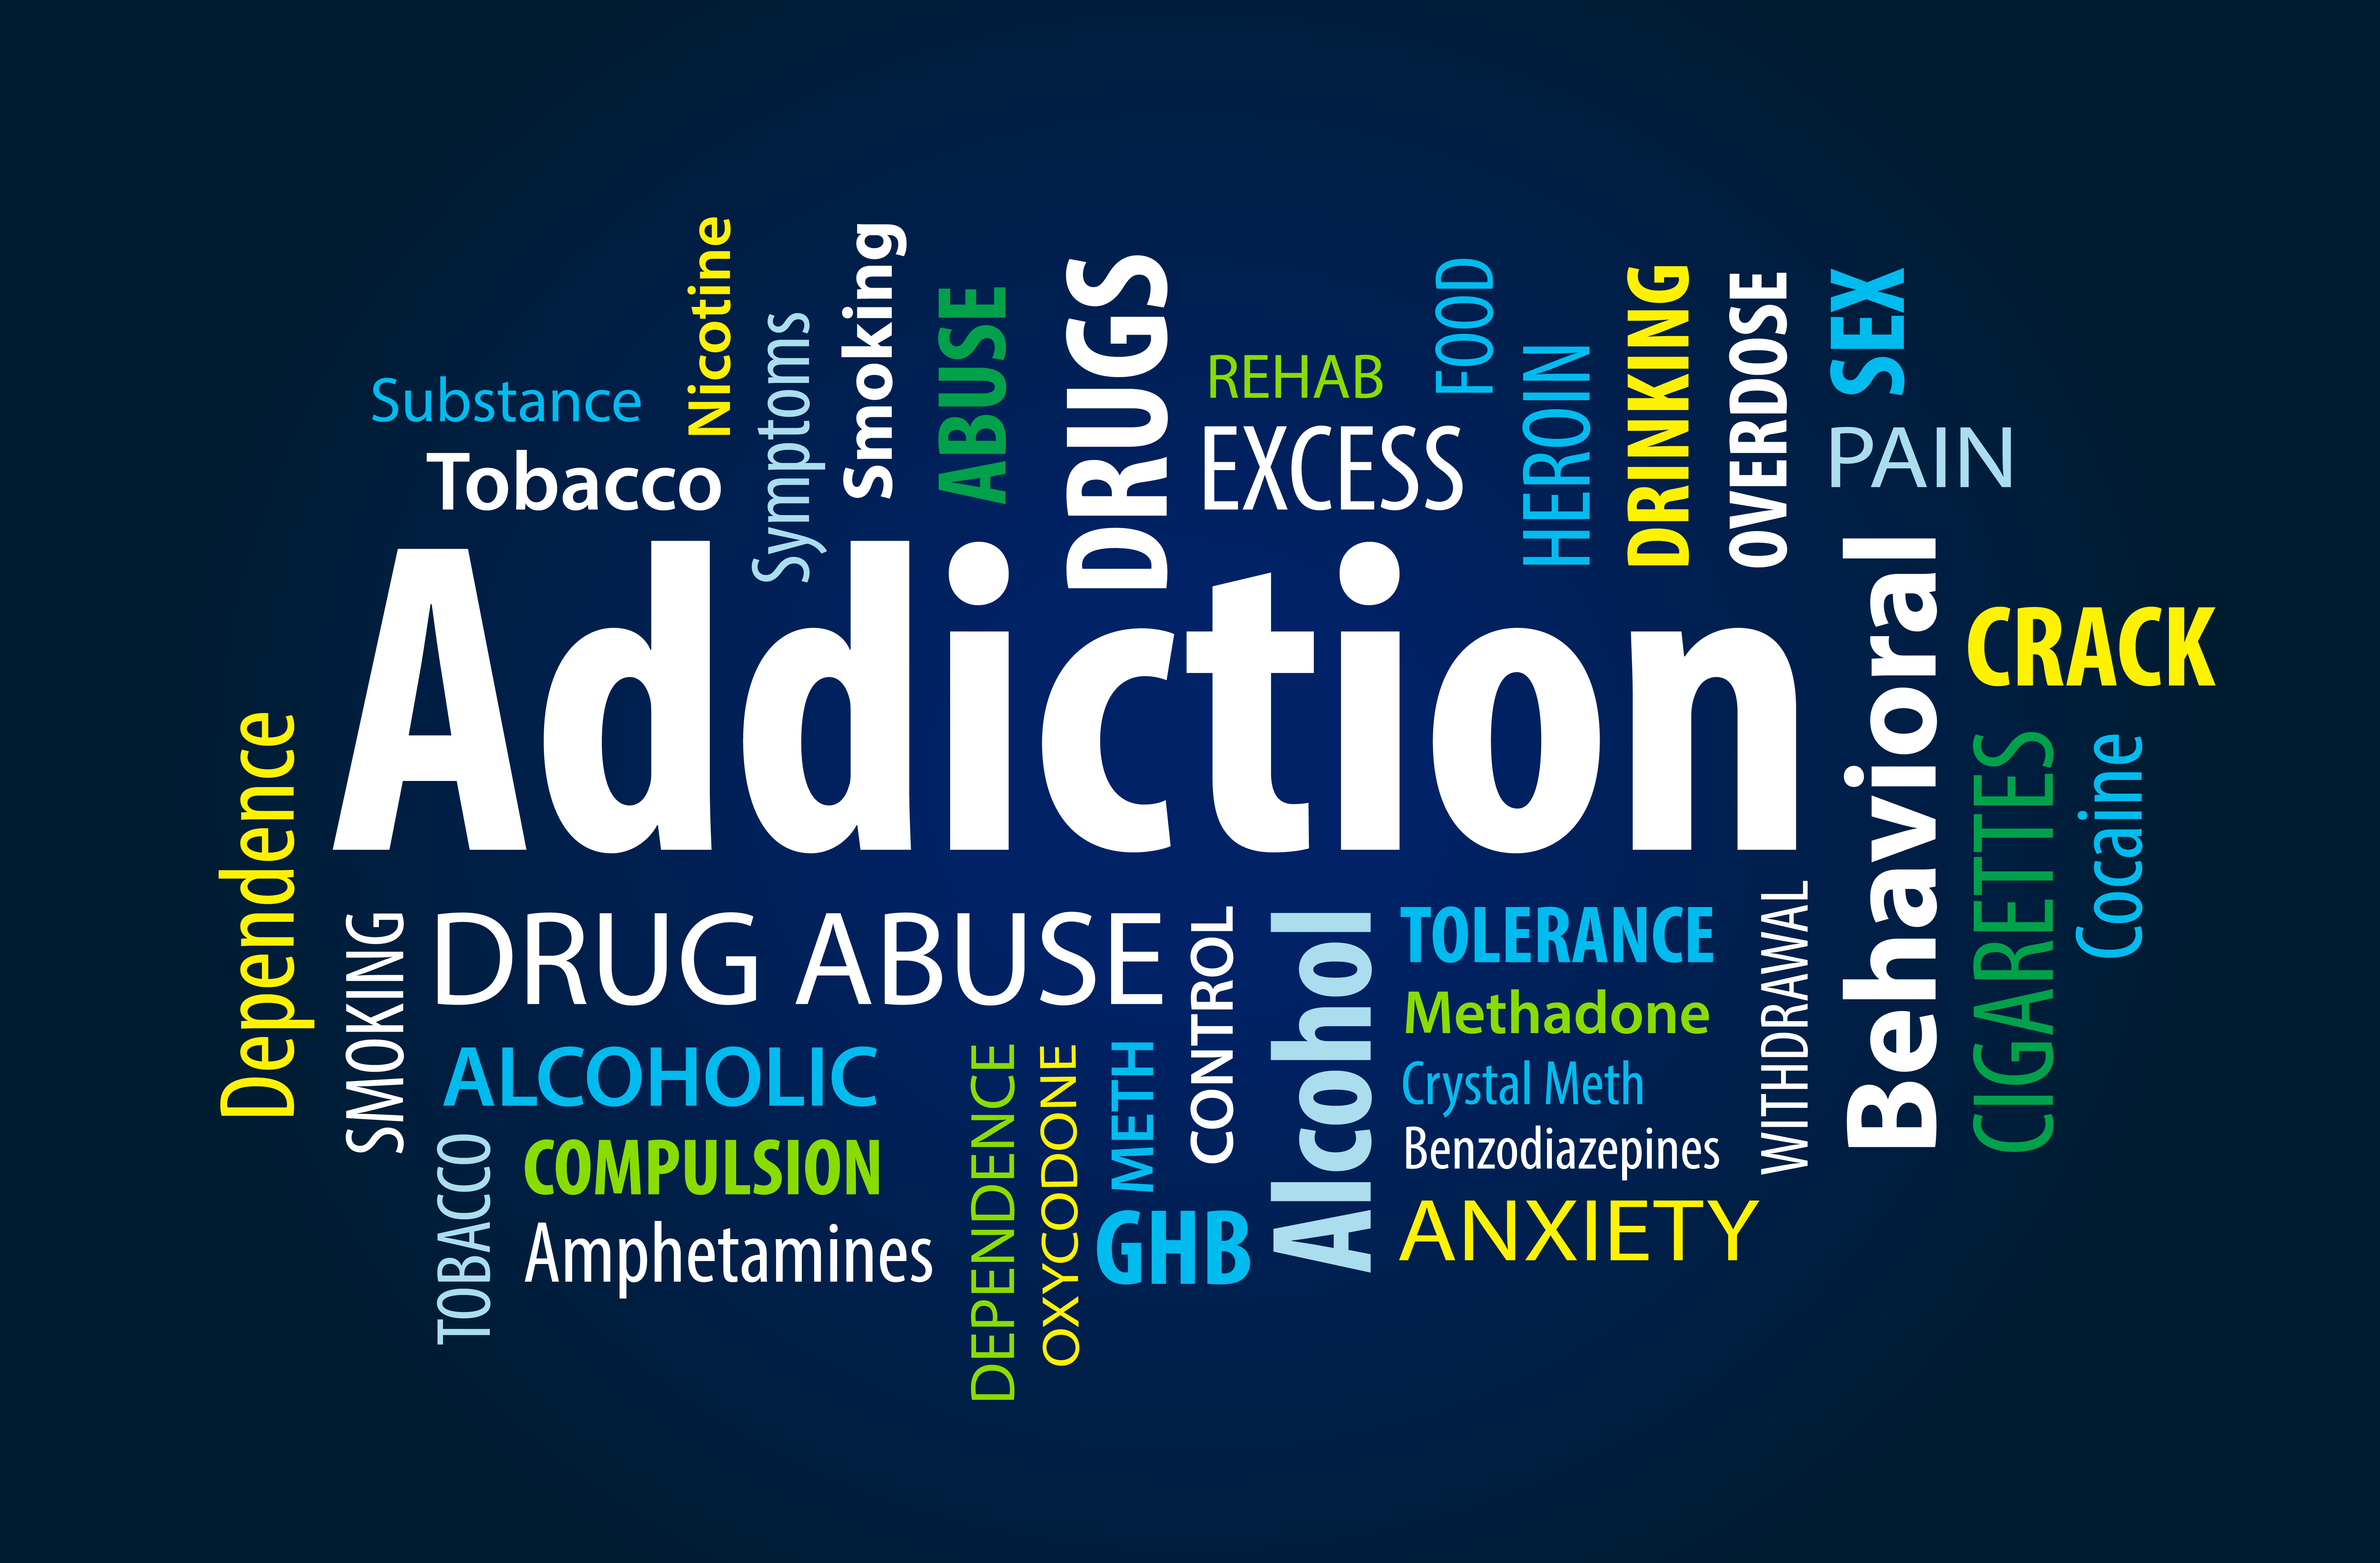 cause and effect gambling addiction A gambling addiction occurs when a person continues to gamble despite negative effects that may impact their finances, relationships, or well-being gambling addiction involves compulsions to seek out gambling, betting, and wagering, and the end result can be devastating for the gambler as well as his or her family 1.